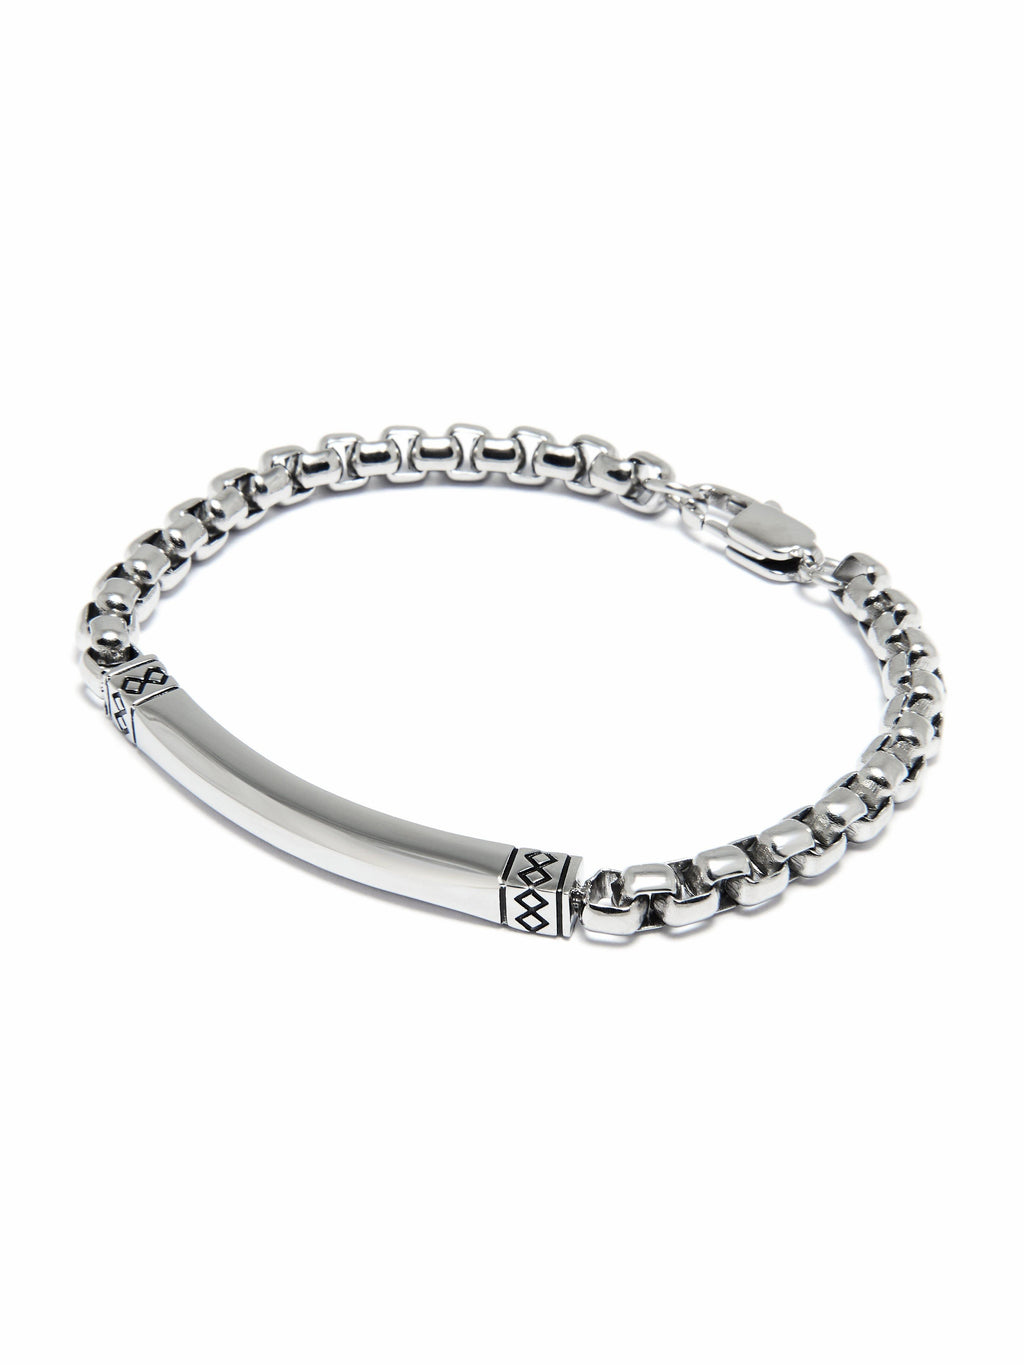 Men's Small Silver Chain Bracelet